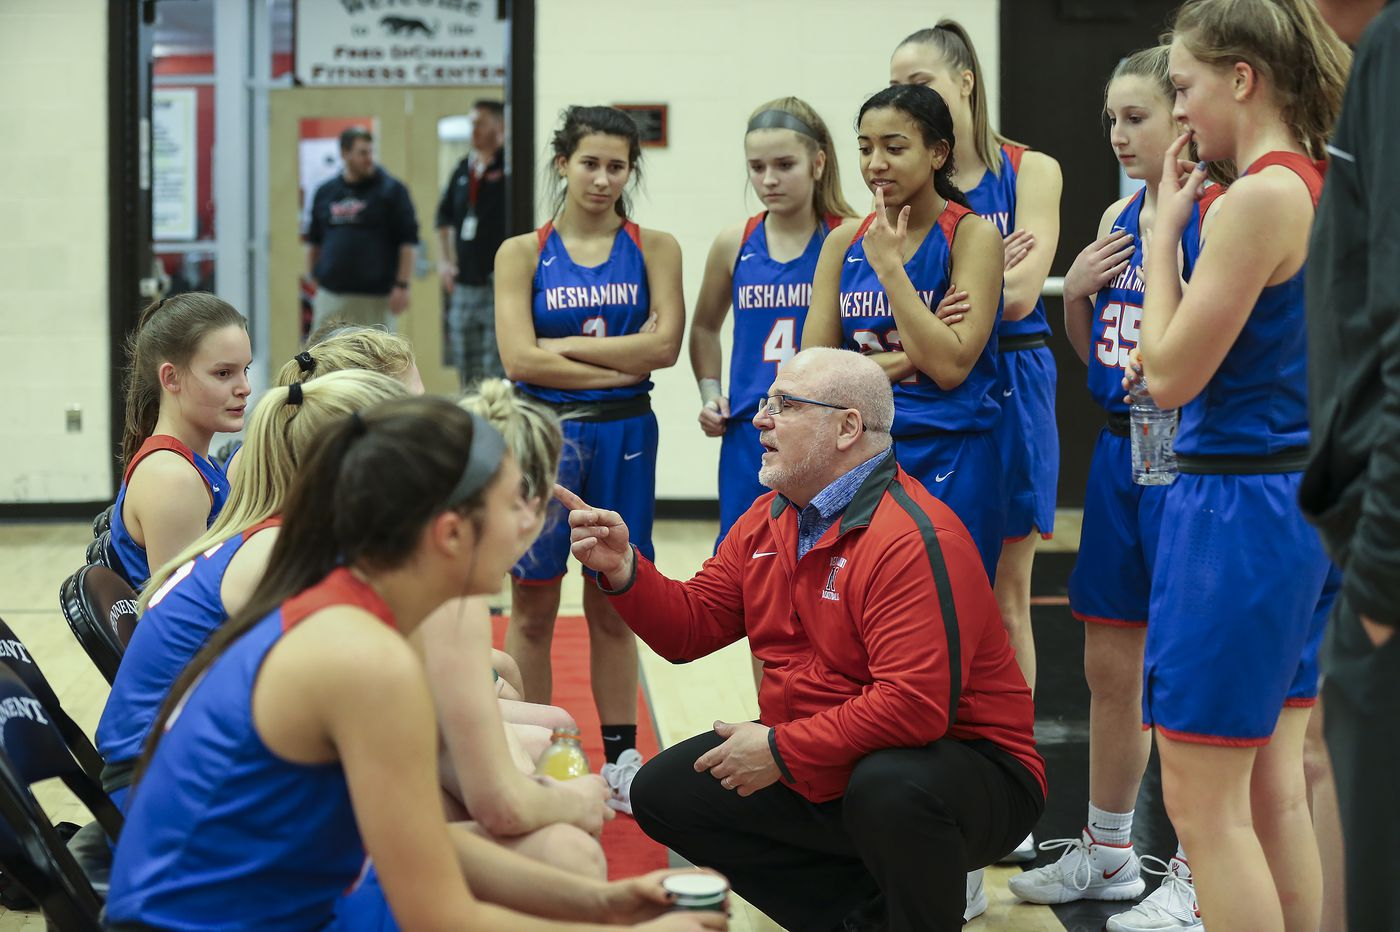 Basketball recruiting: Finding the right college fit is what Neshaminy basketball coach Joe Lally is all about